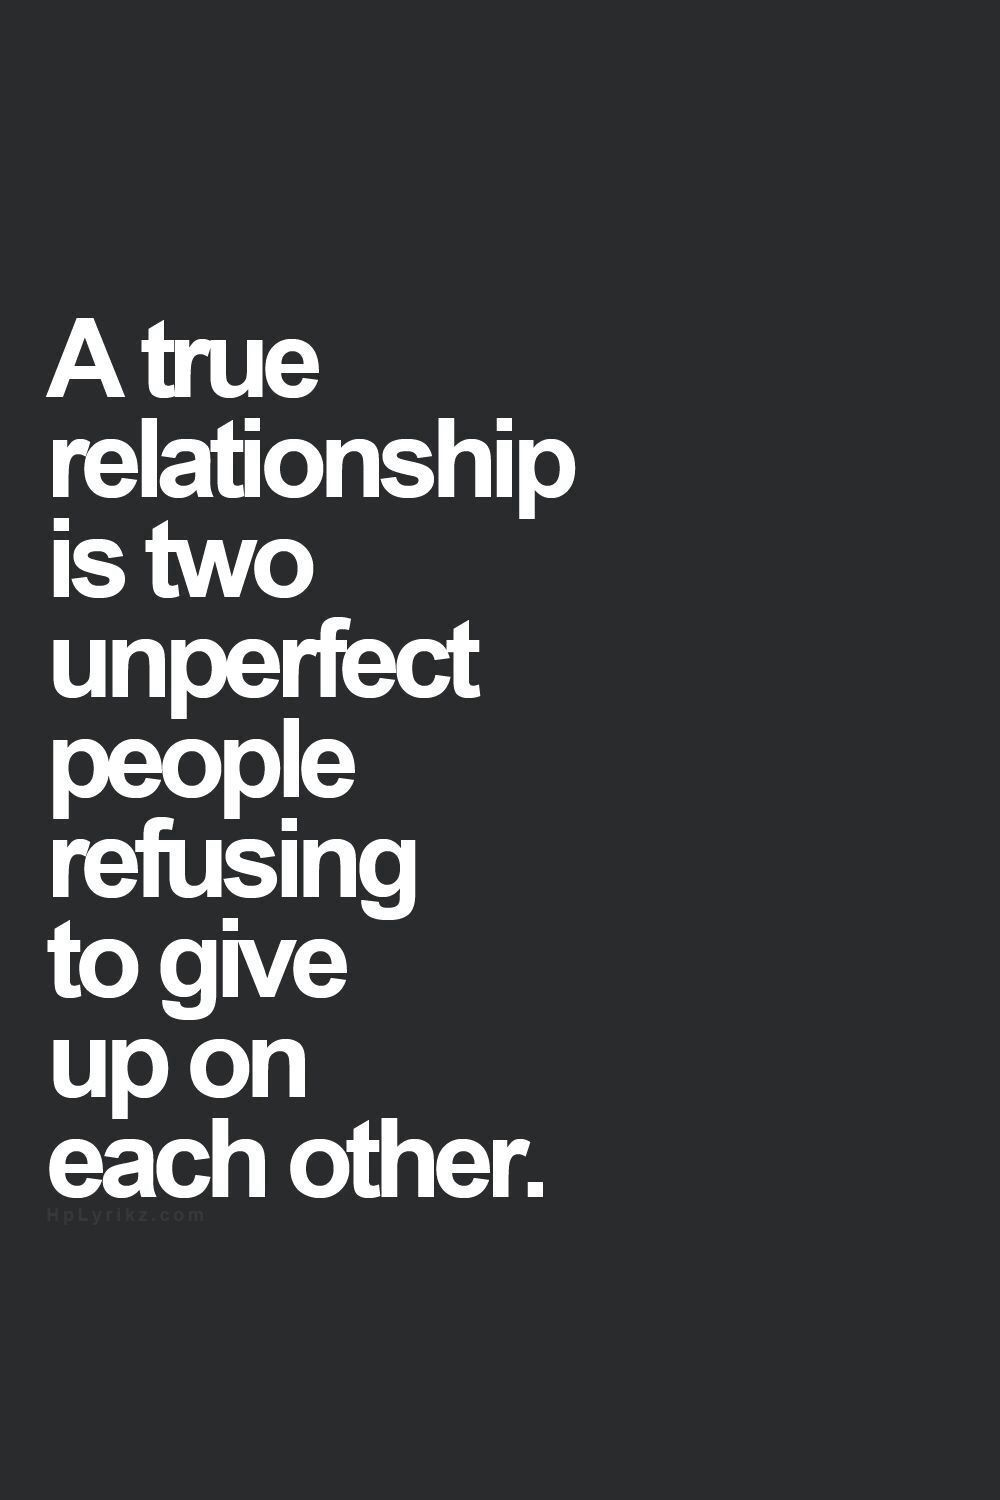 Quotes For Relationships 26 Inspirational Love Quotes And Sayings For Her  Relationship